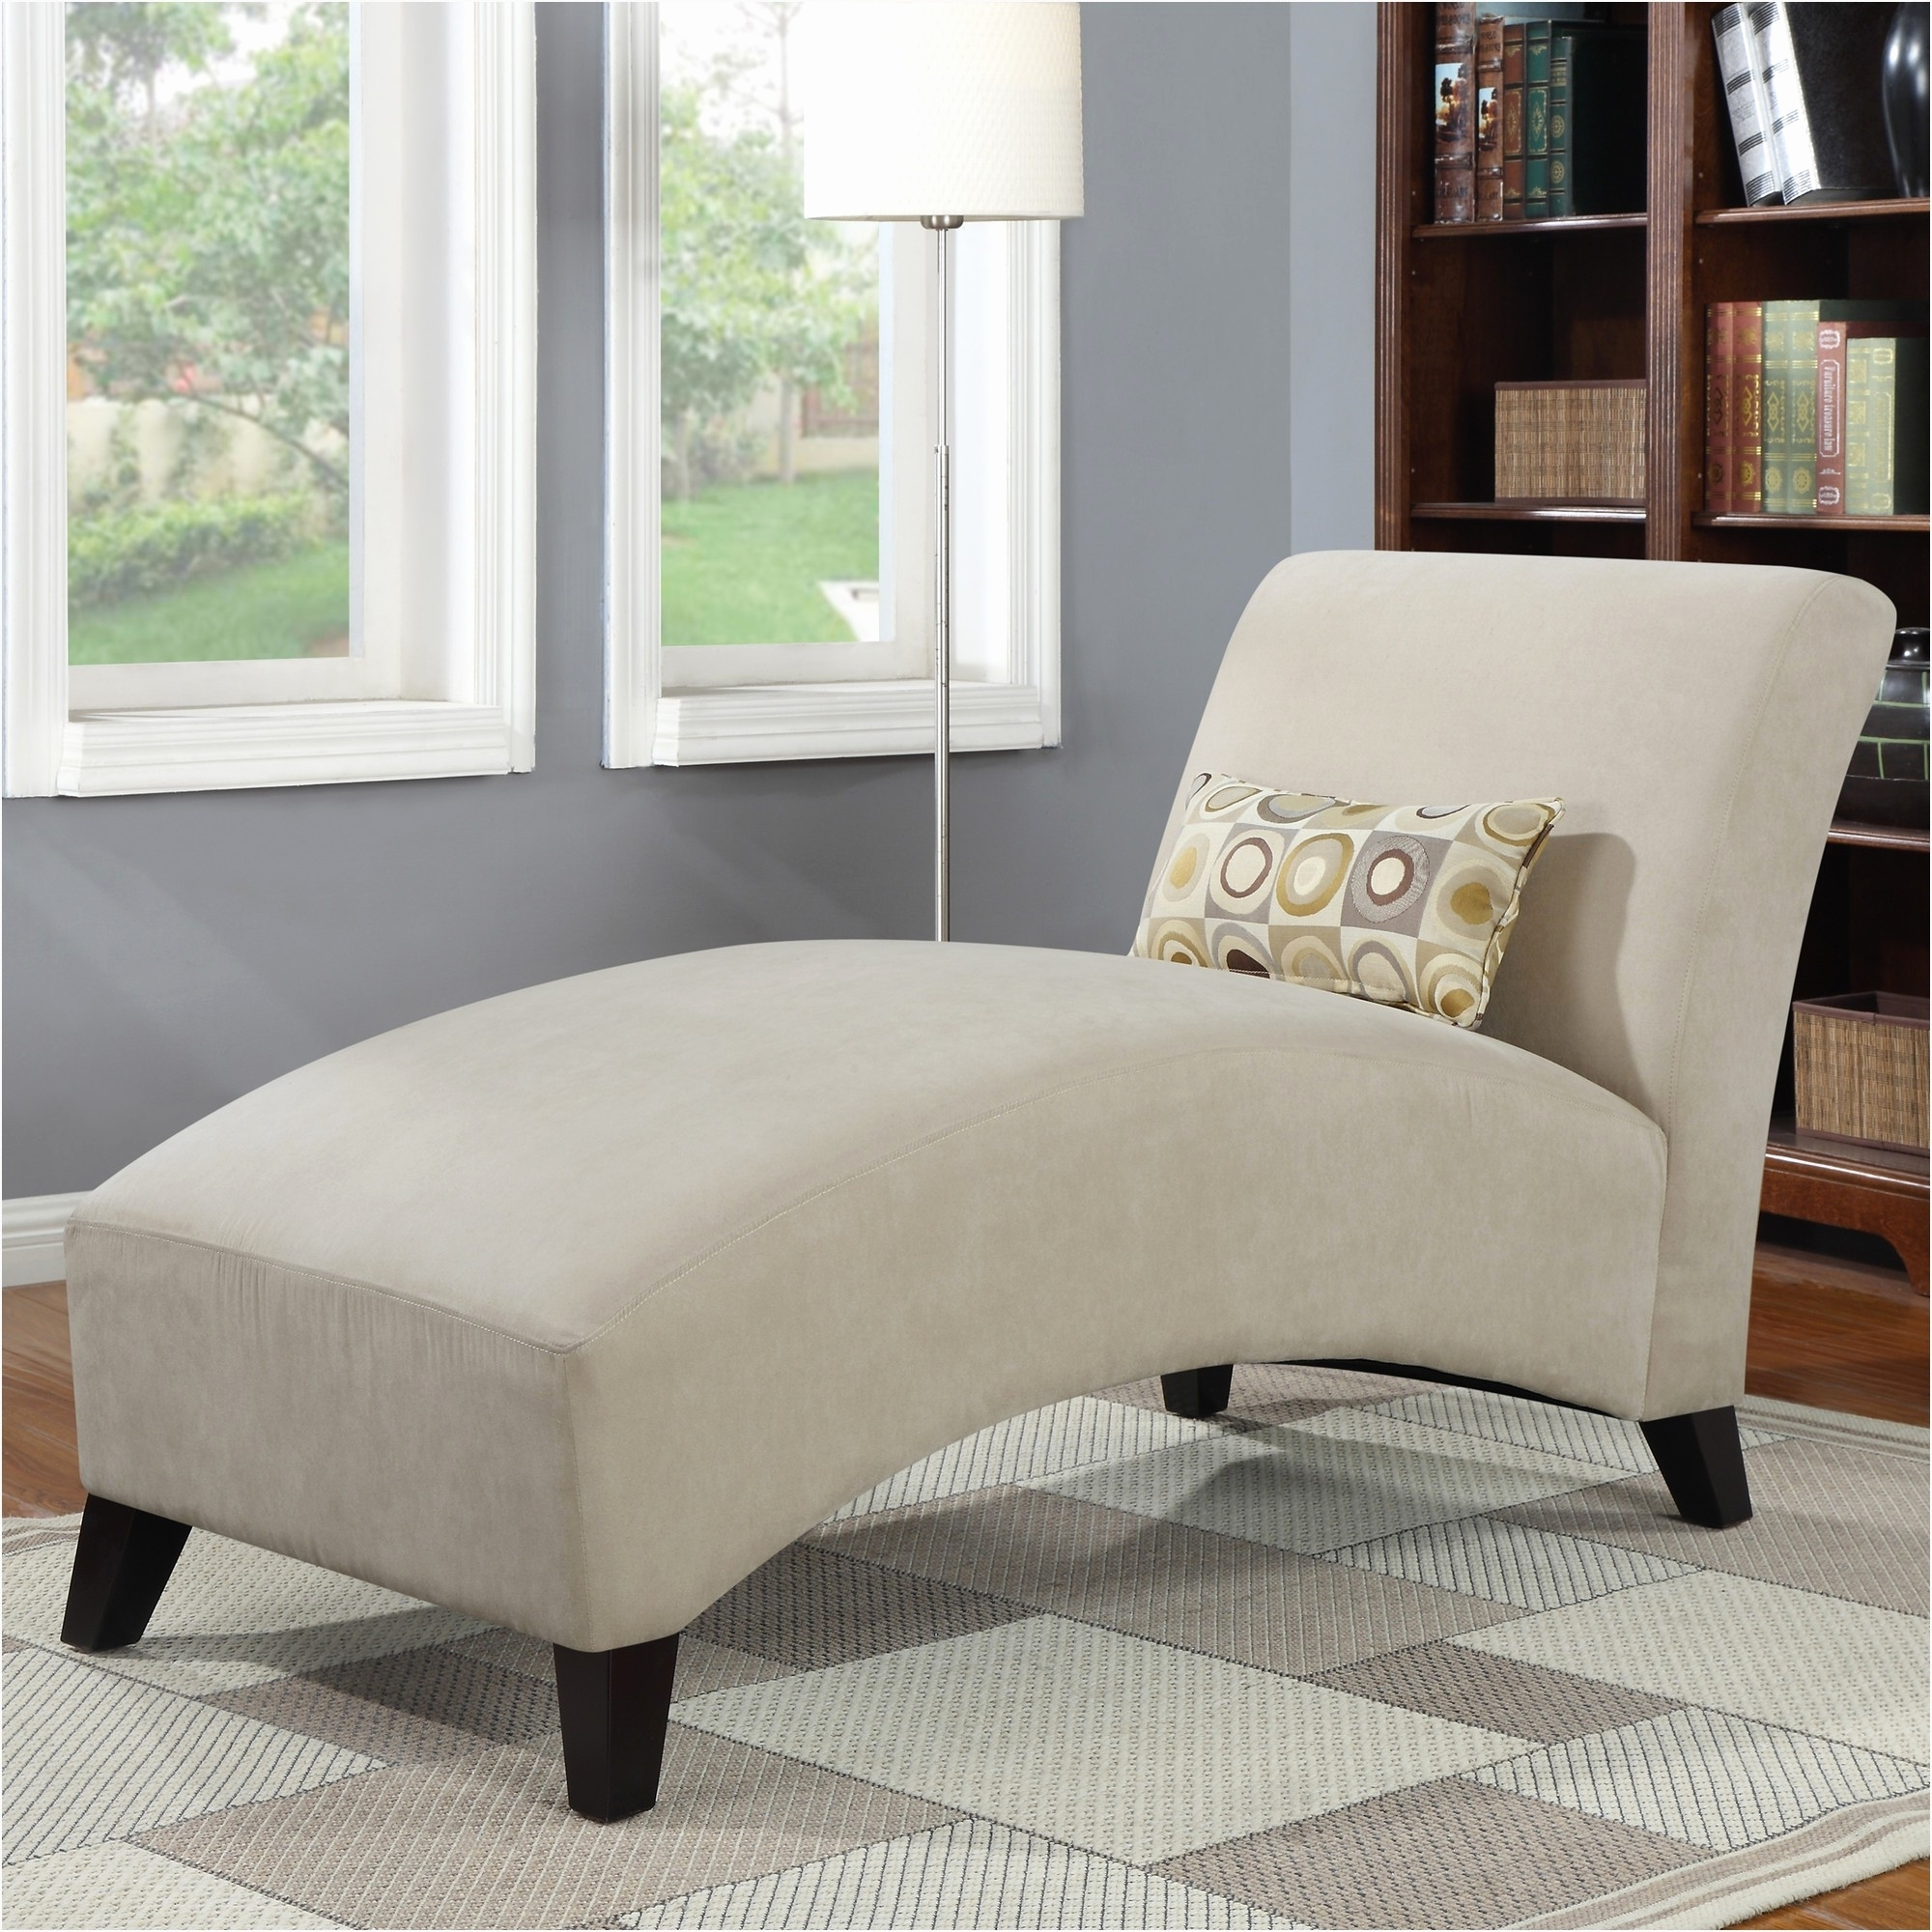 Fresh Chaise Lounge Sofa 2018 – Couches And Sofas Ideas In Latest Mini Chaise Lounge Chairs (View 3 of 15)